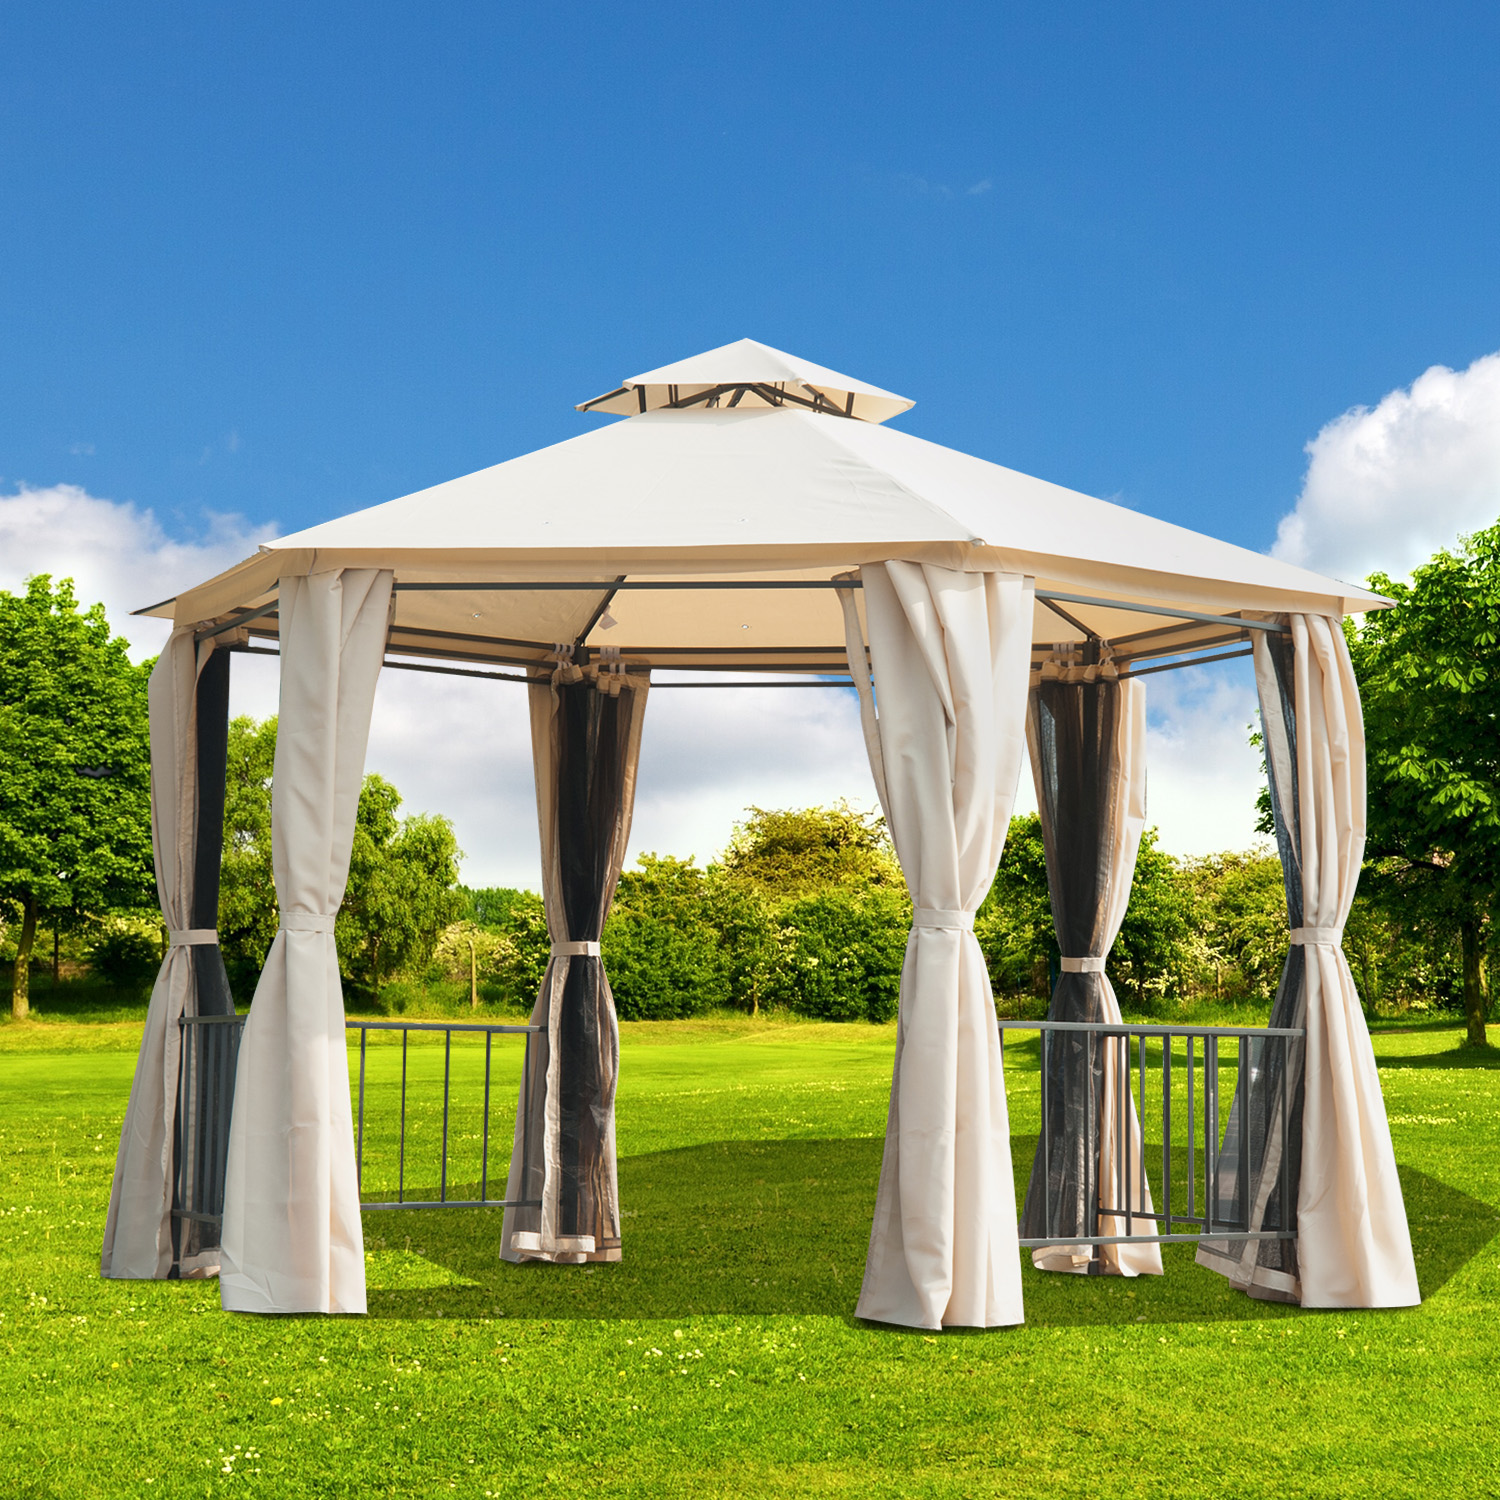 Image of CAD $469.99 Outsunny 10x10ft Garden Gazebo Patio Canopy Double Tier Outdoor Shelter with Mosquito Netting Beige / 13ft Hexagon Portable Curtains 13' Sunshade Backyard w/ Canada 95509791221